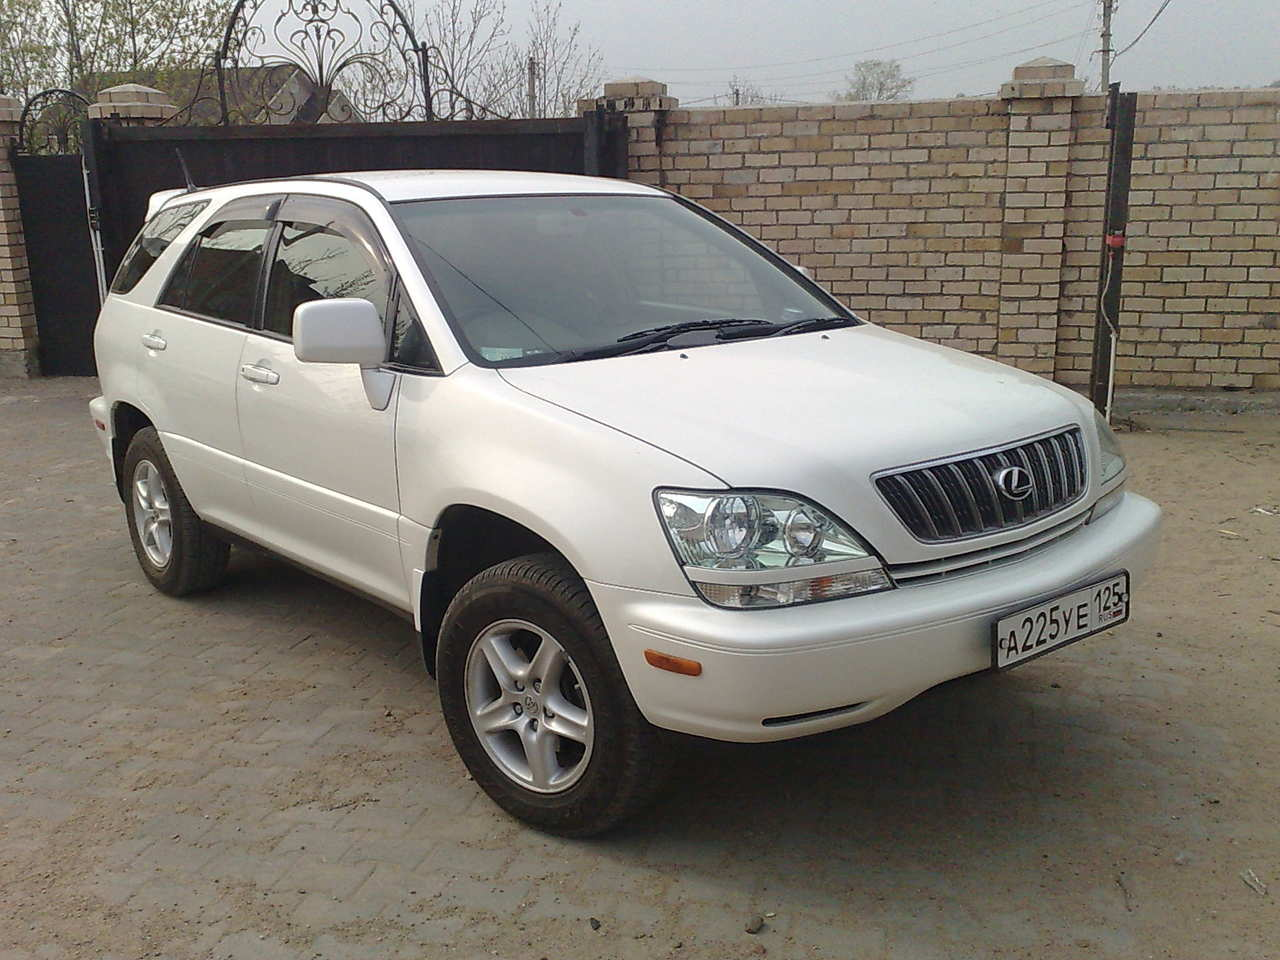 Used 2002 Toyota Harrier Photos 2400cc Gasoline Ff